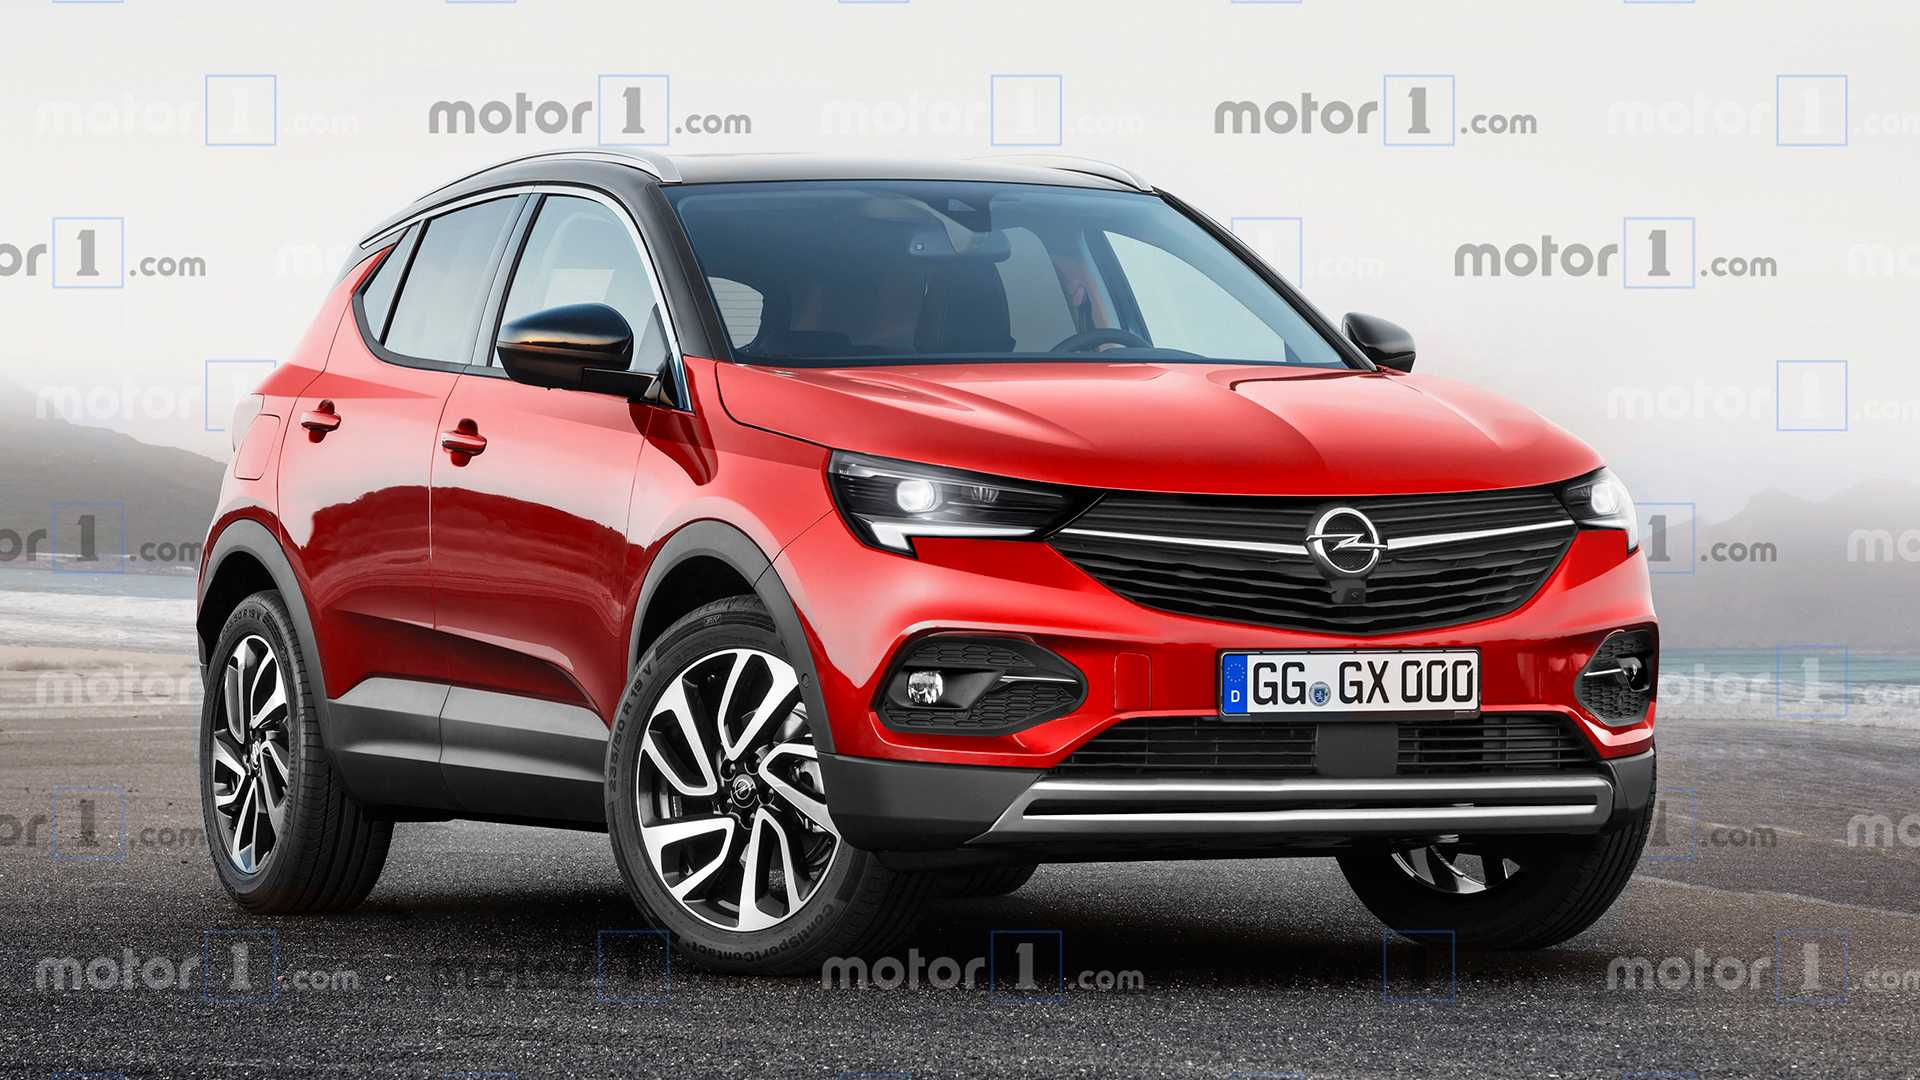 52 A Der Neue Opel Mokka 2020 Release Date And Concept